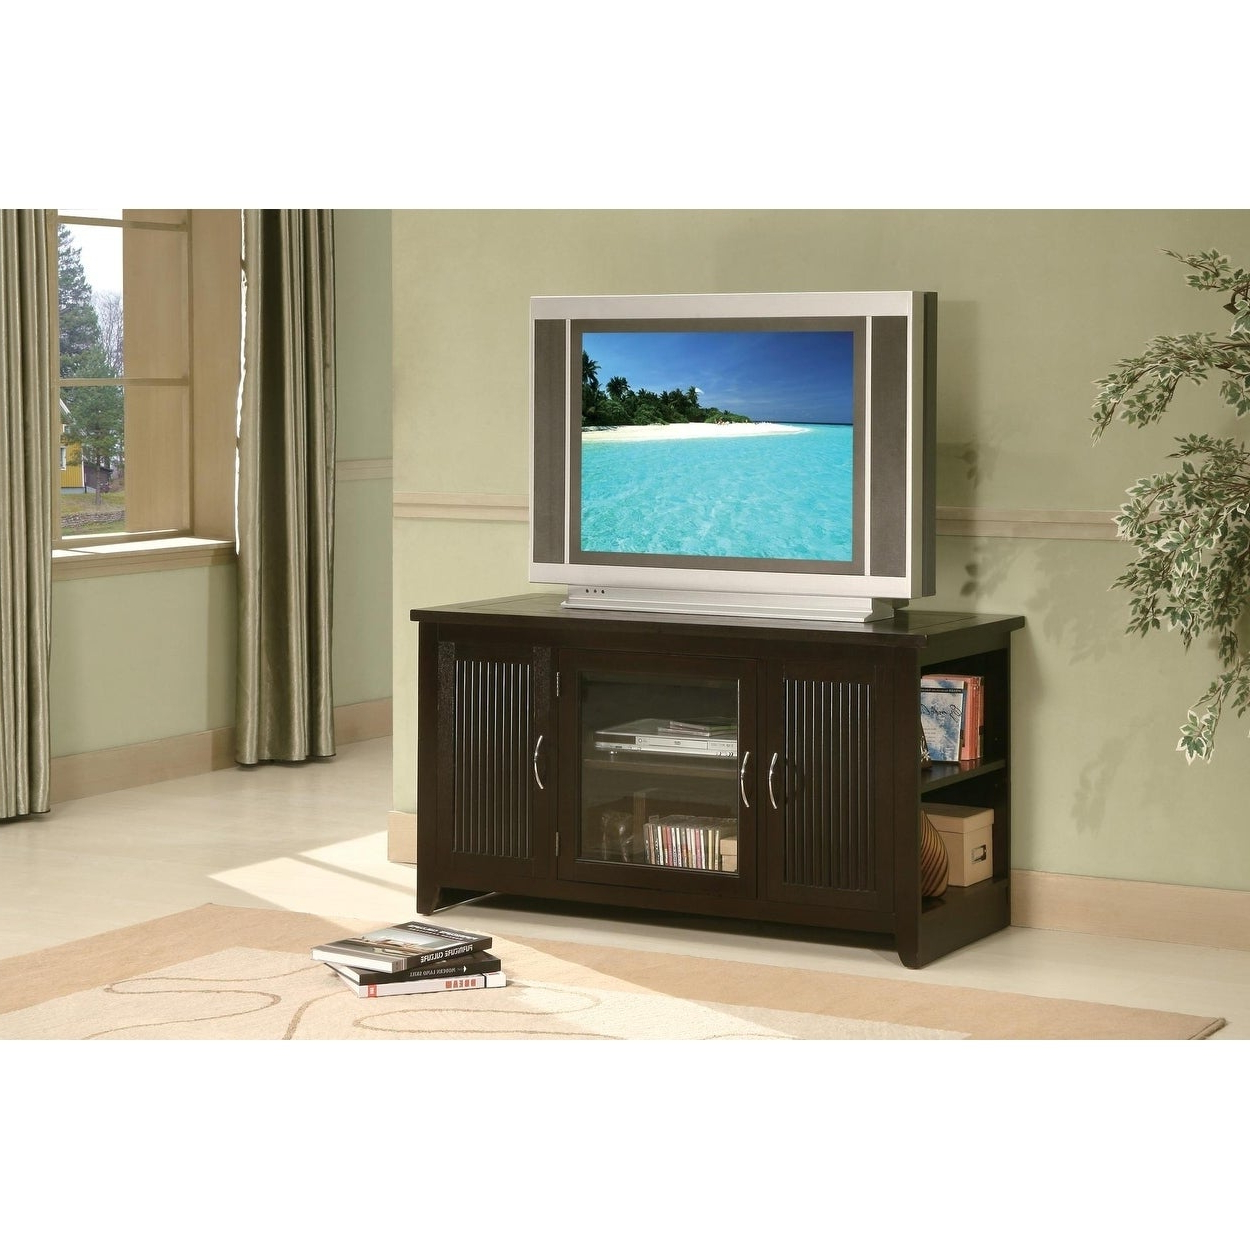 Transitional Style Tv Stand – Best Home Style Inspiration In Fulton Corner Tv Stands (View 11 of 20)